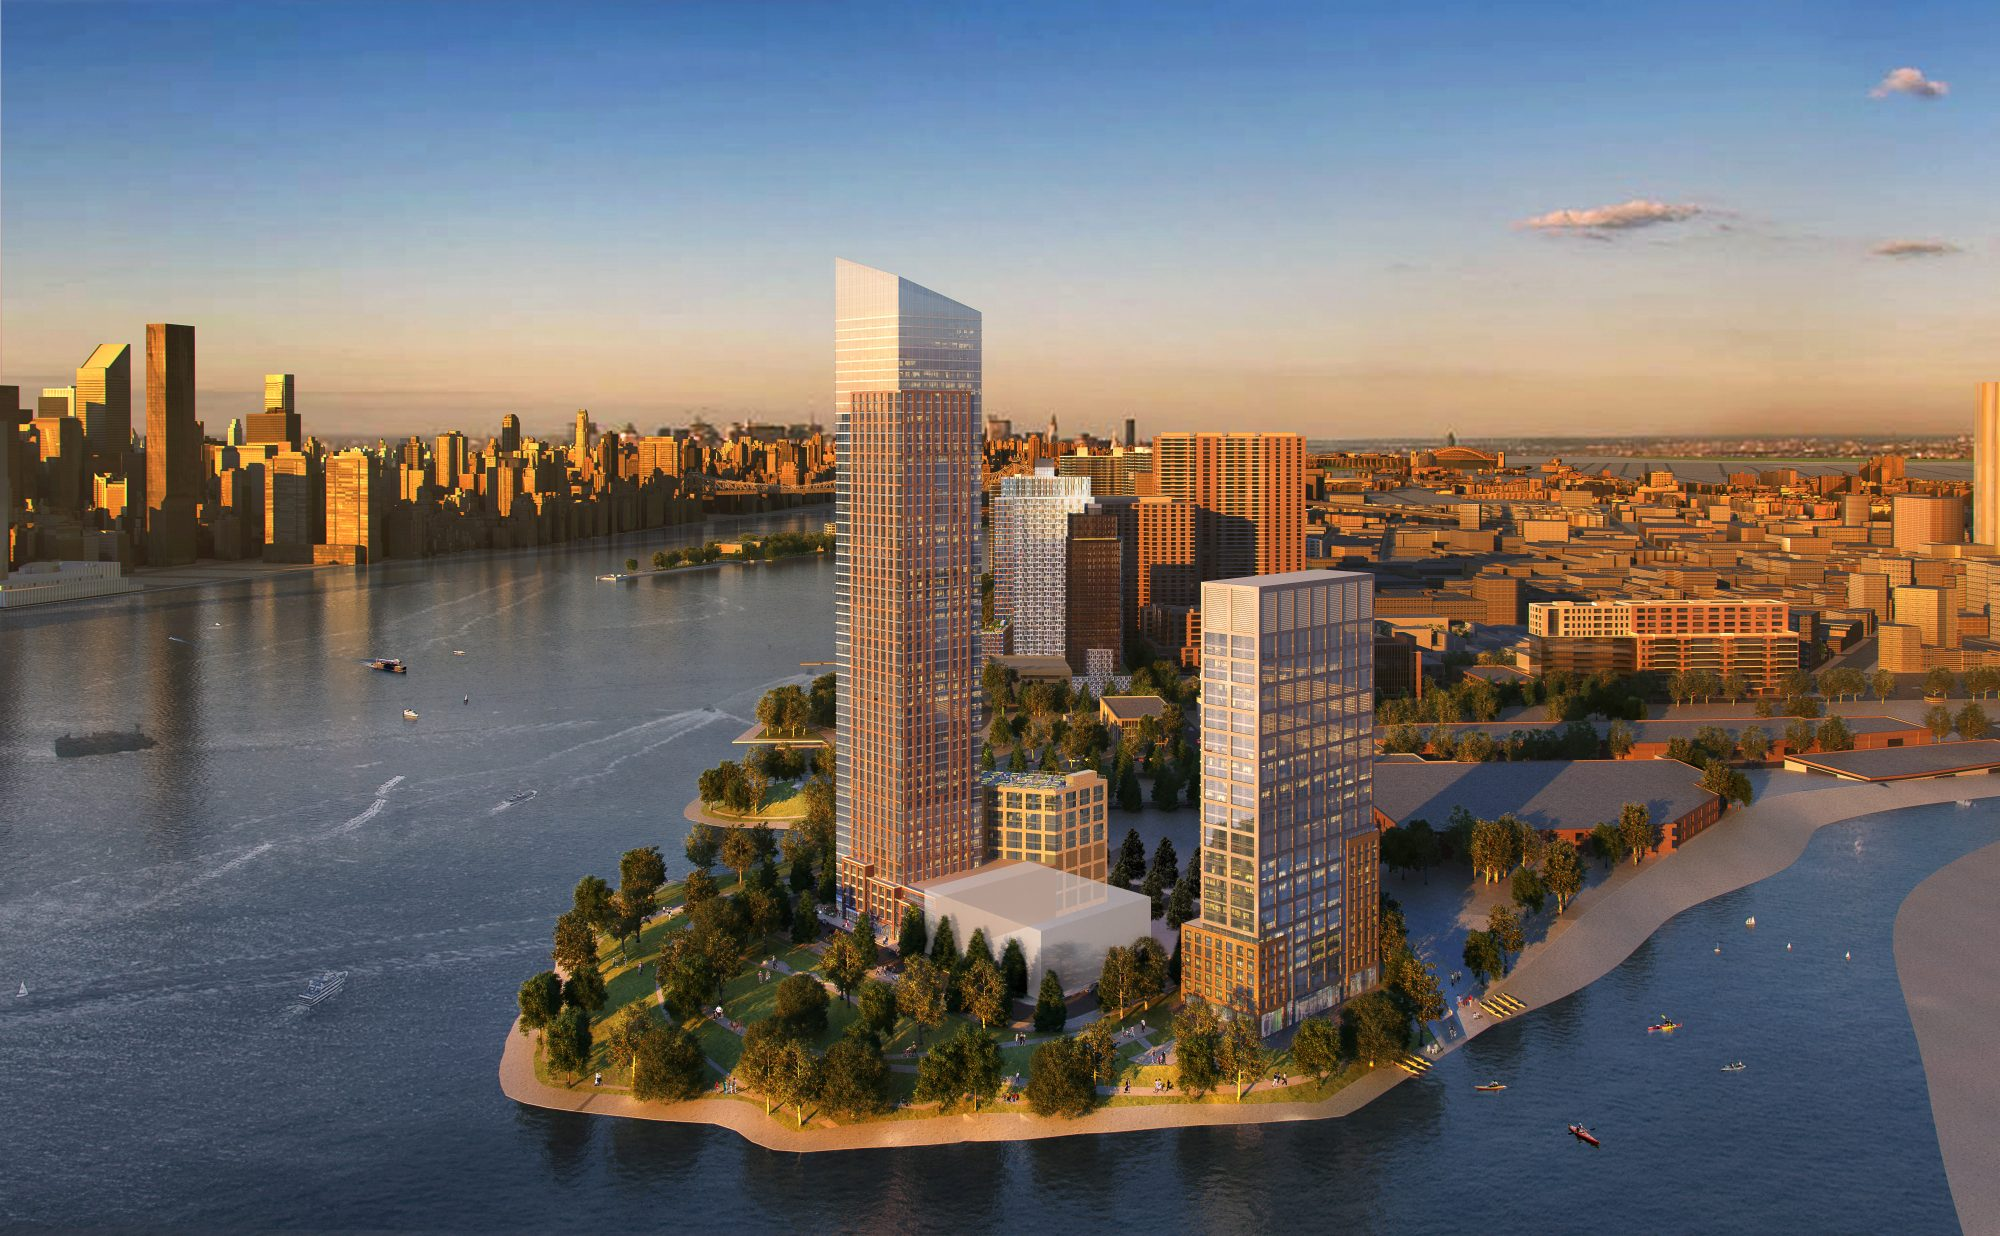 New Hunters Point South Towers Will Be 55 and 32 Stories, Construction to  Begin Next Year | LIC Post